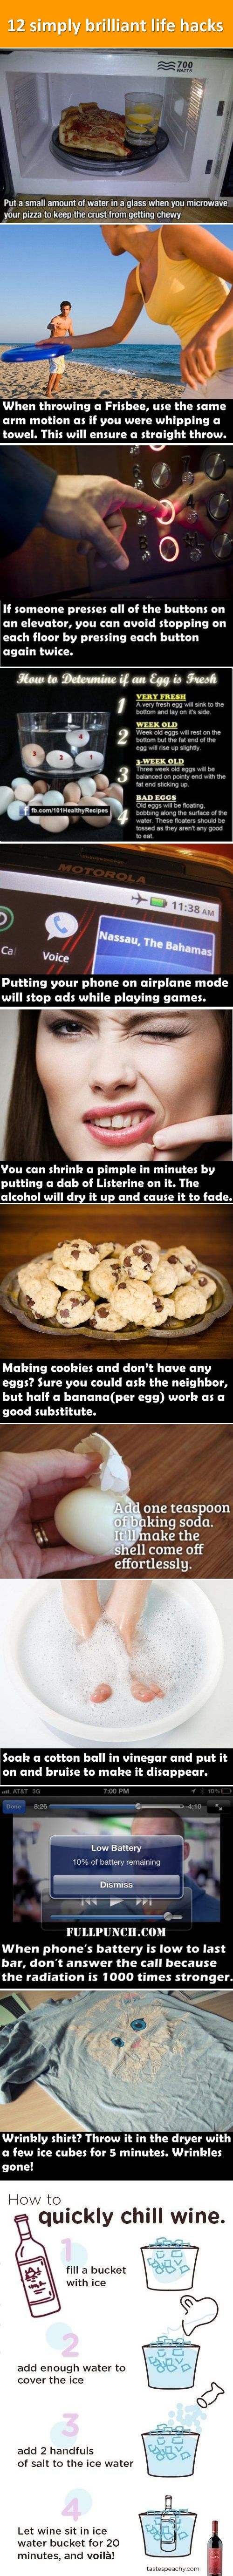 12 simply brilliant life hacks. - Shall have research that mobile phone one. Scary/suspect stuff...